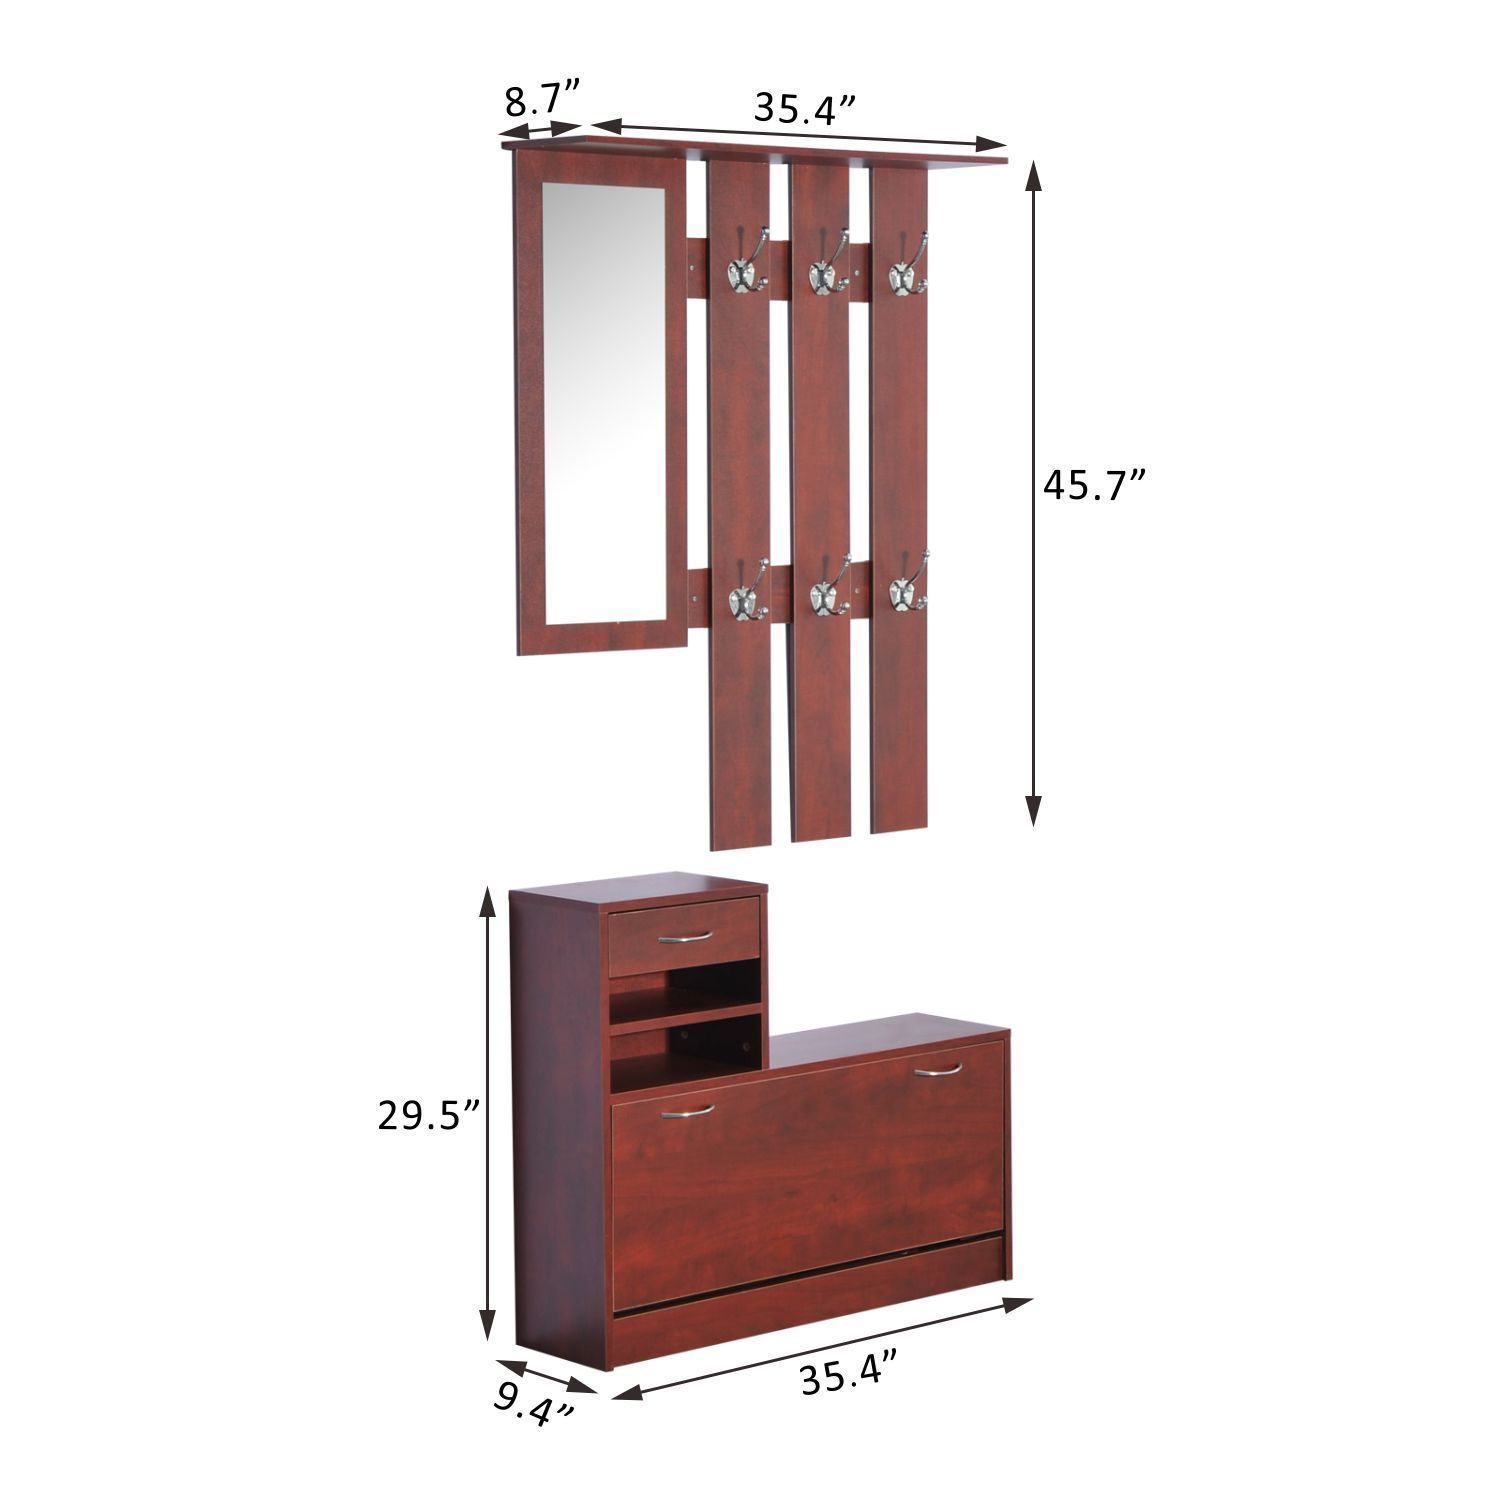 Foyer Mirror Cabinet : Pc entryway hall coat rack shoe storage bench organizer